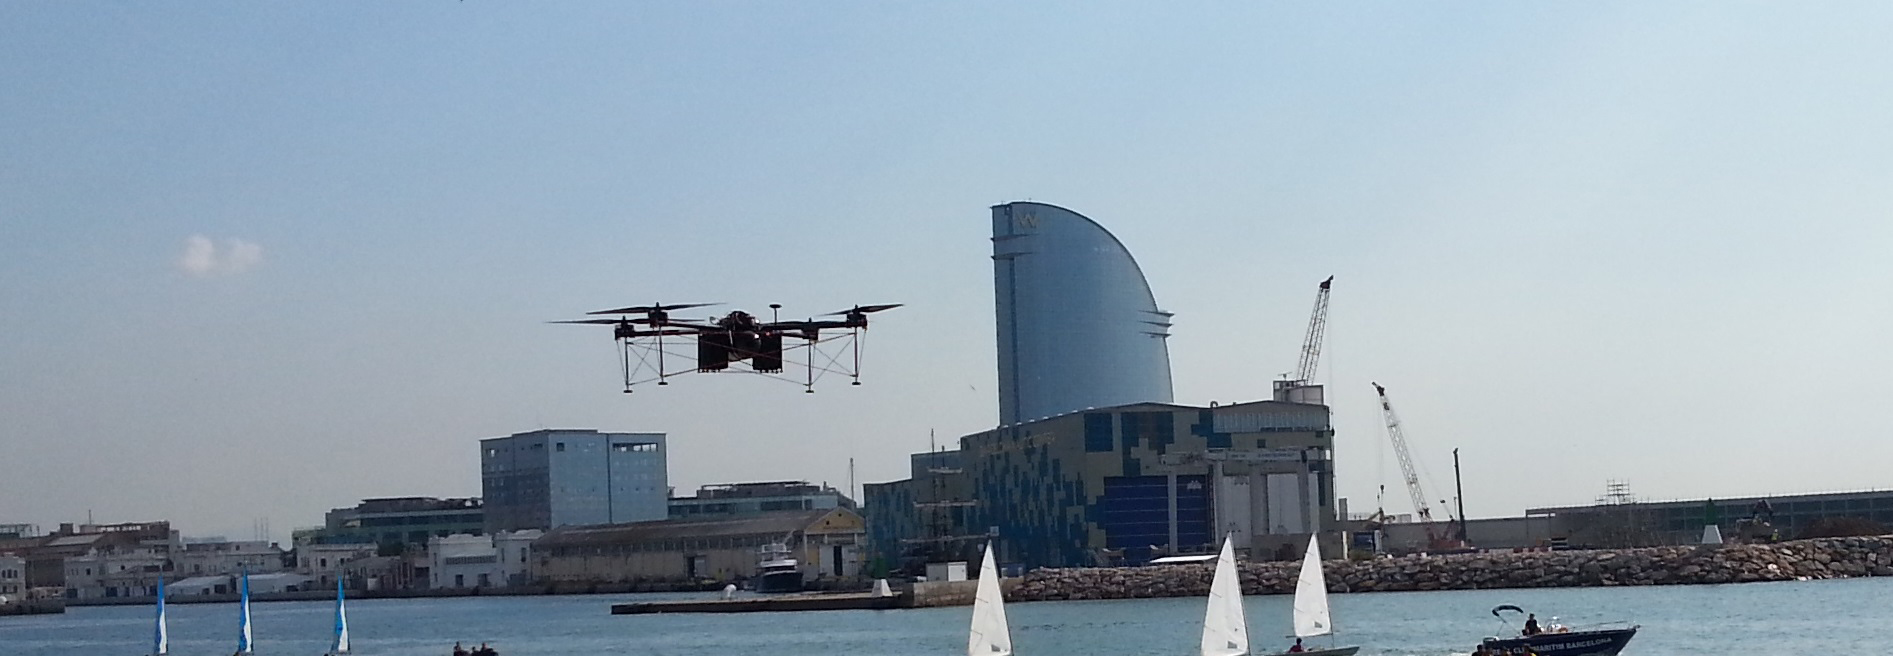 JULY, 2016 - FIRST TO LAUNCH A FUEL CELL POWERED UAV IN SPAIN